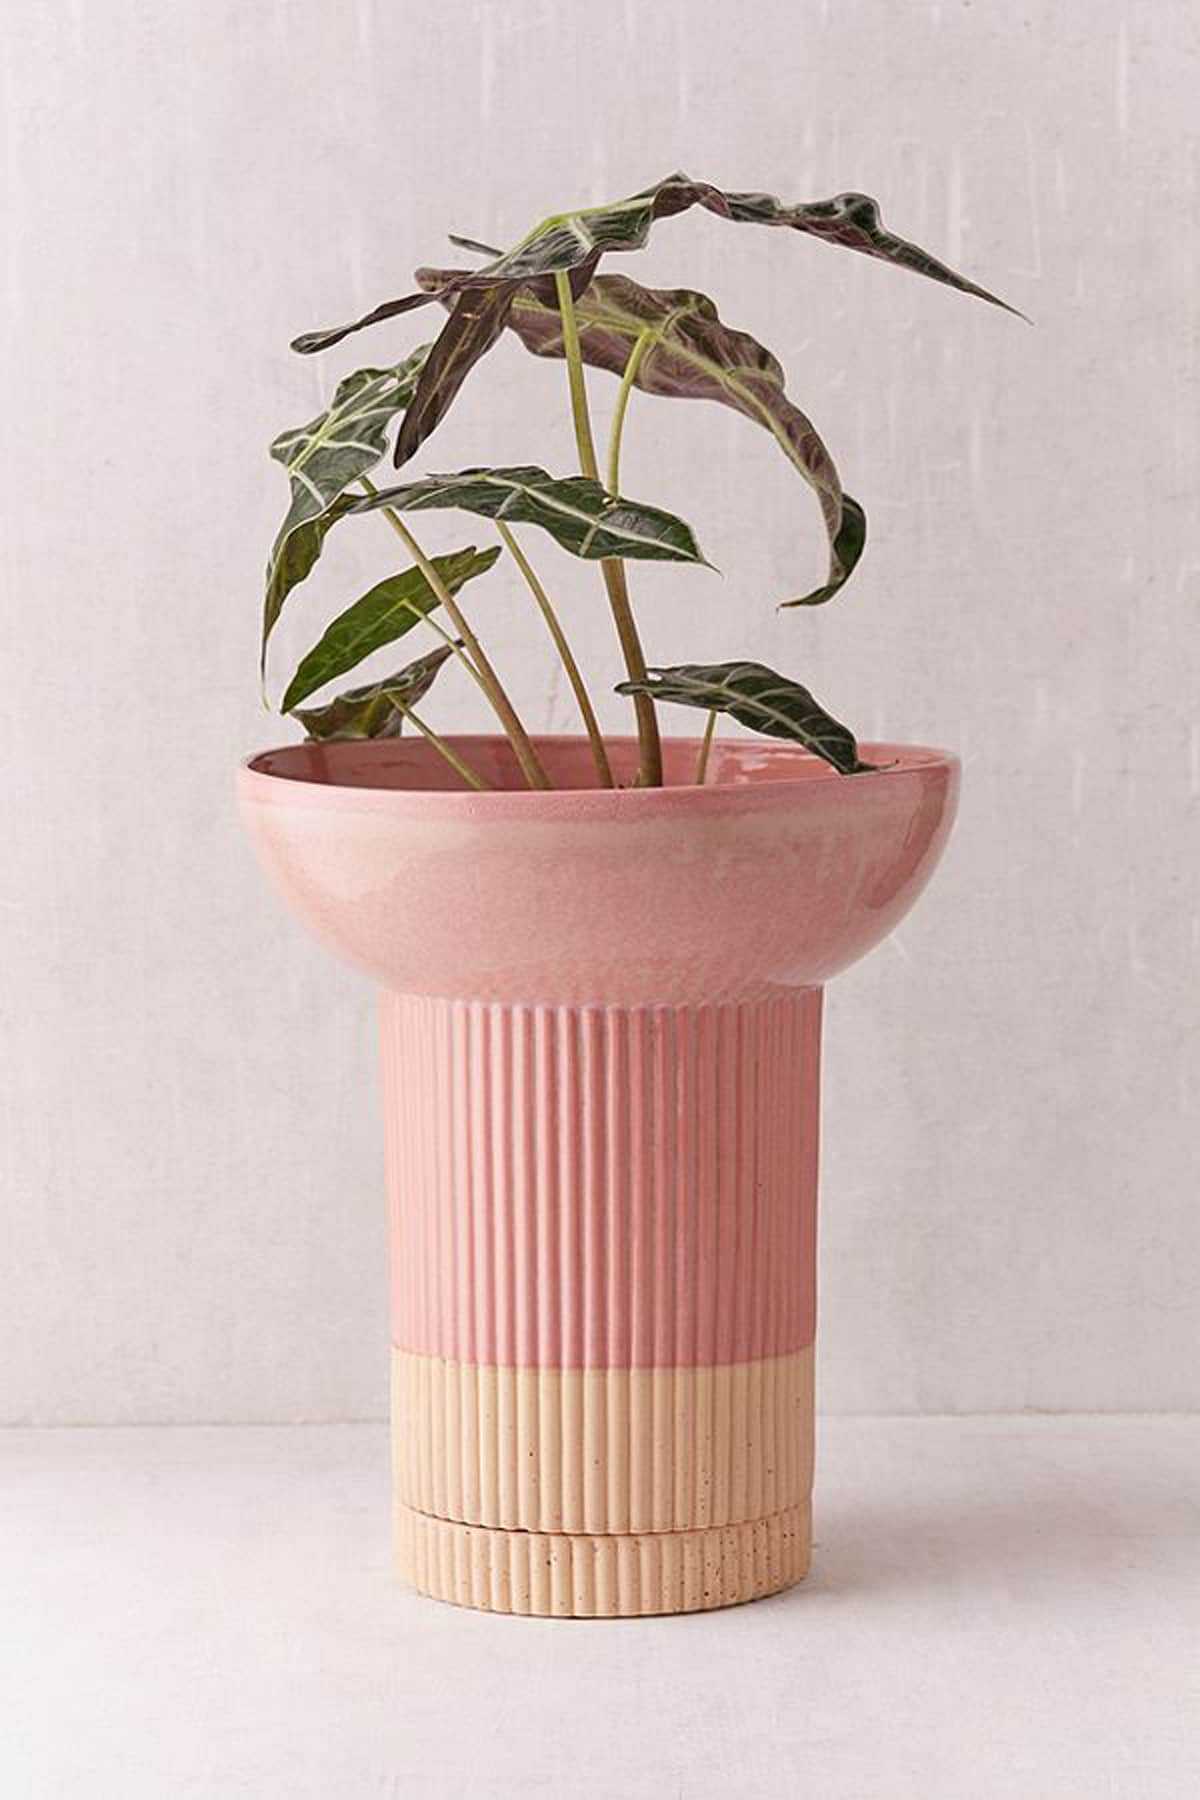 Urban Outfitters Just Launched Its Home Line for Spring Line — And It's Incredible: gallery image 4